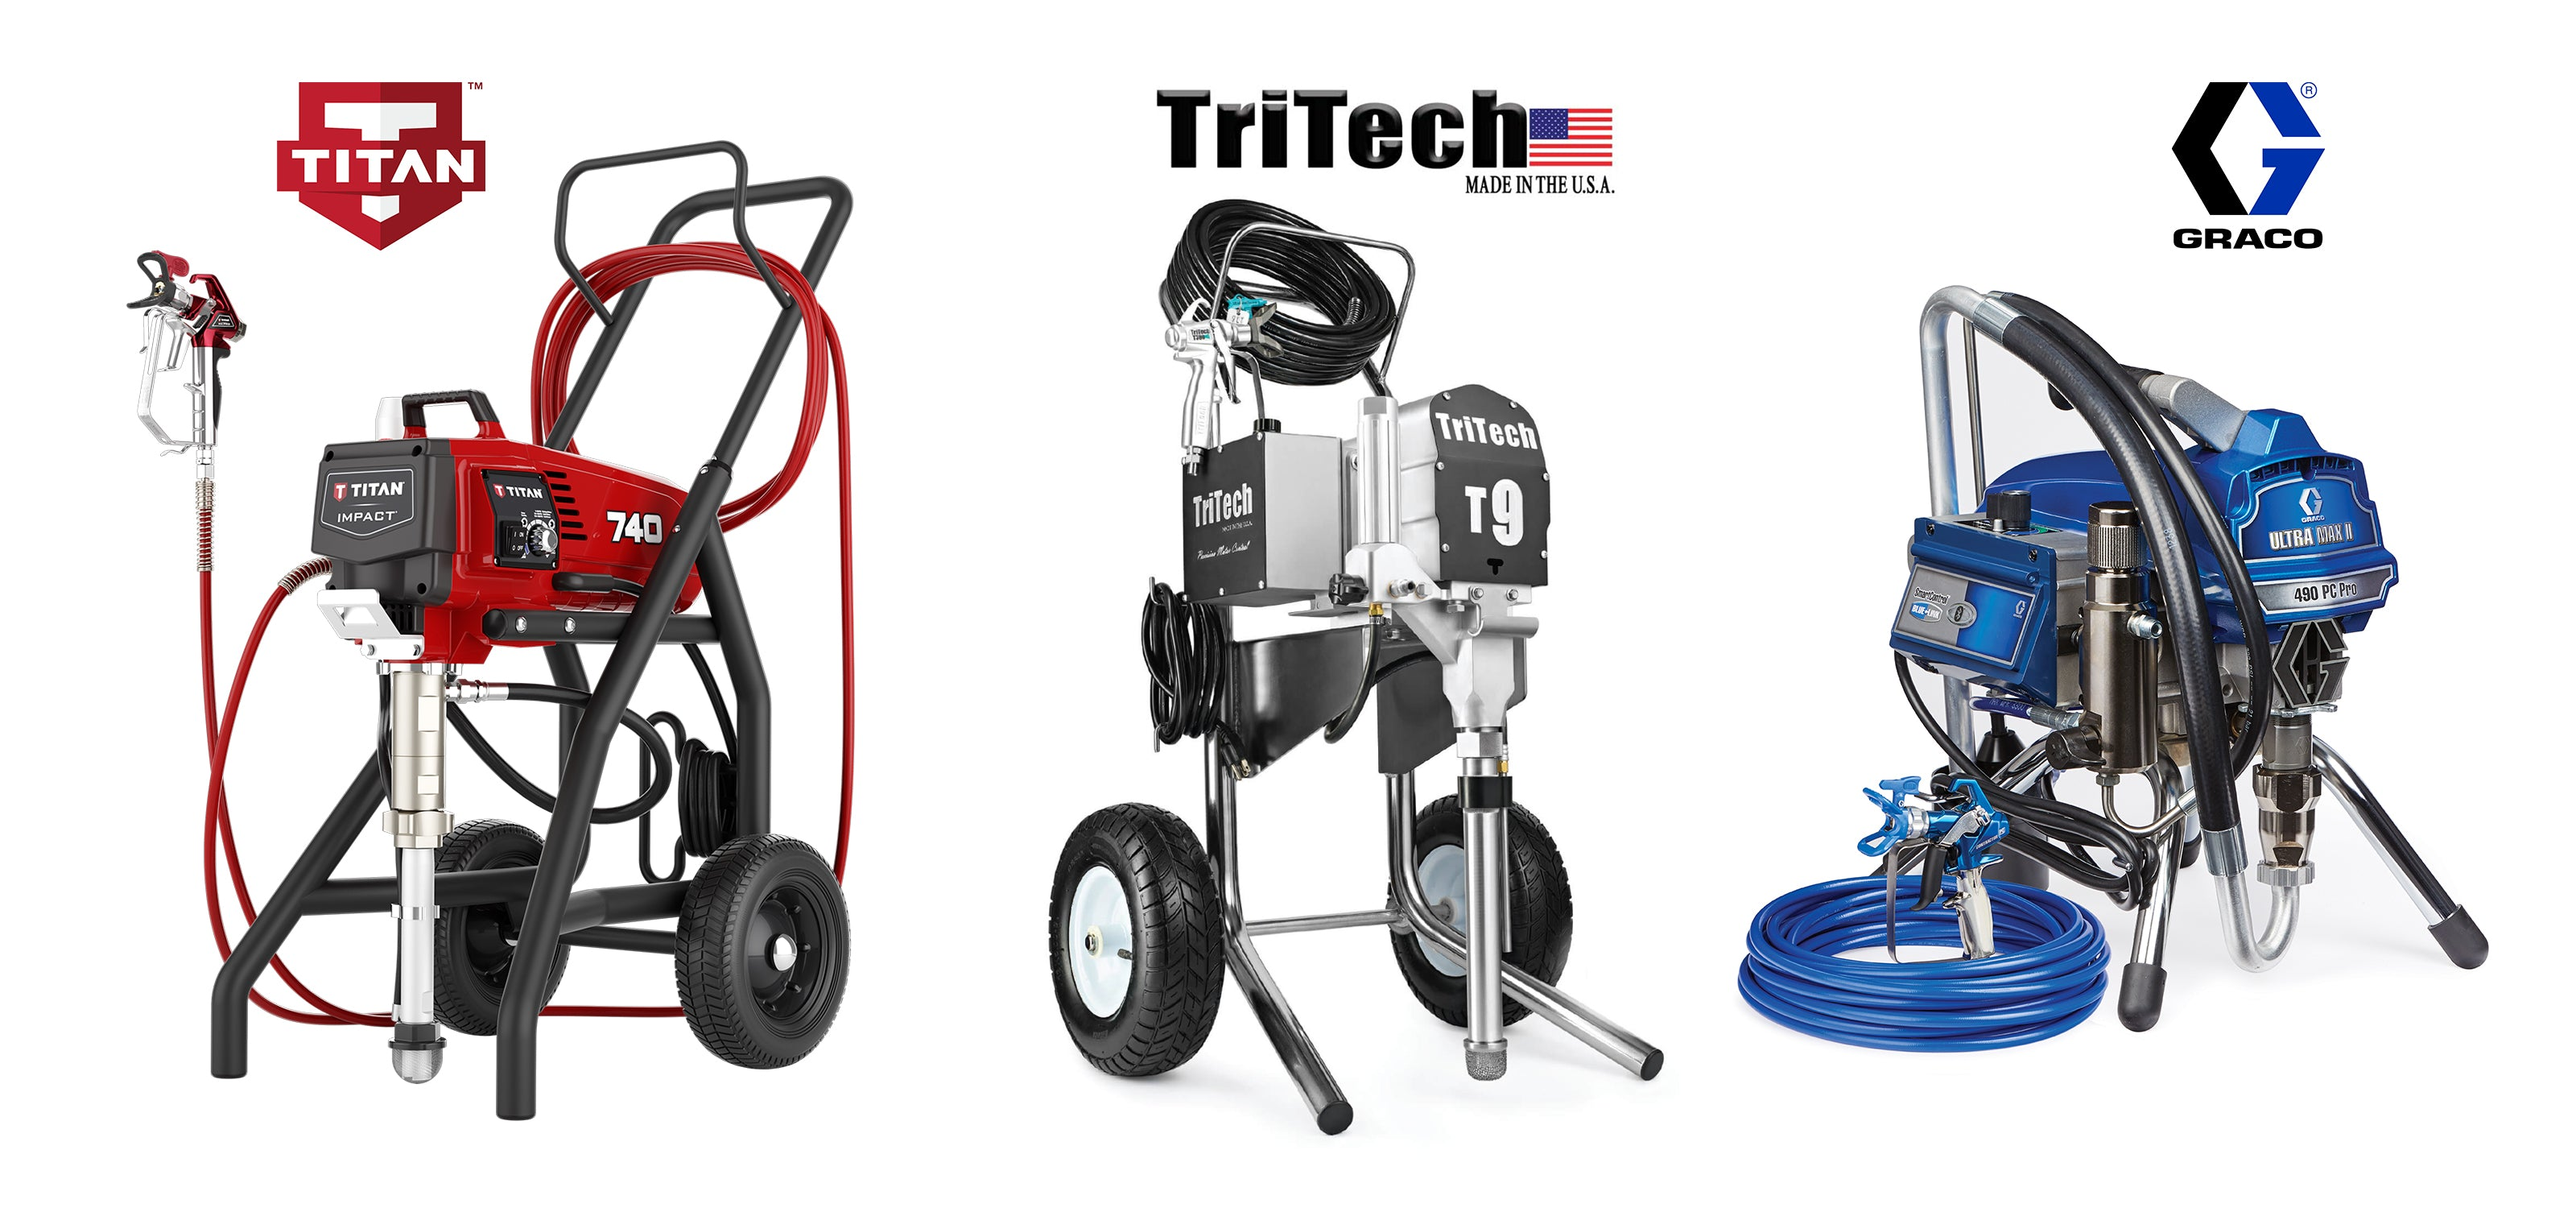 Titan-TriTech-Graco-airless sprayers